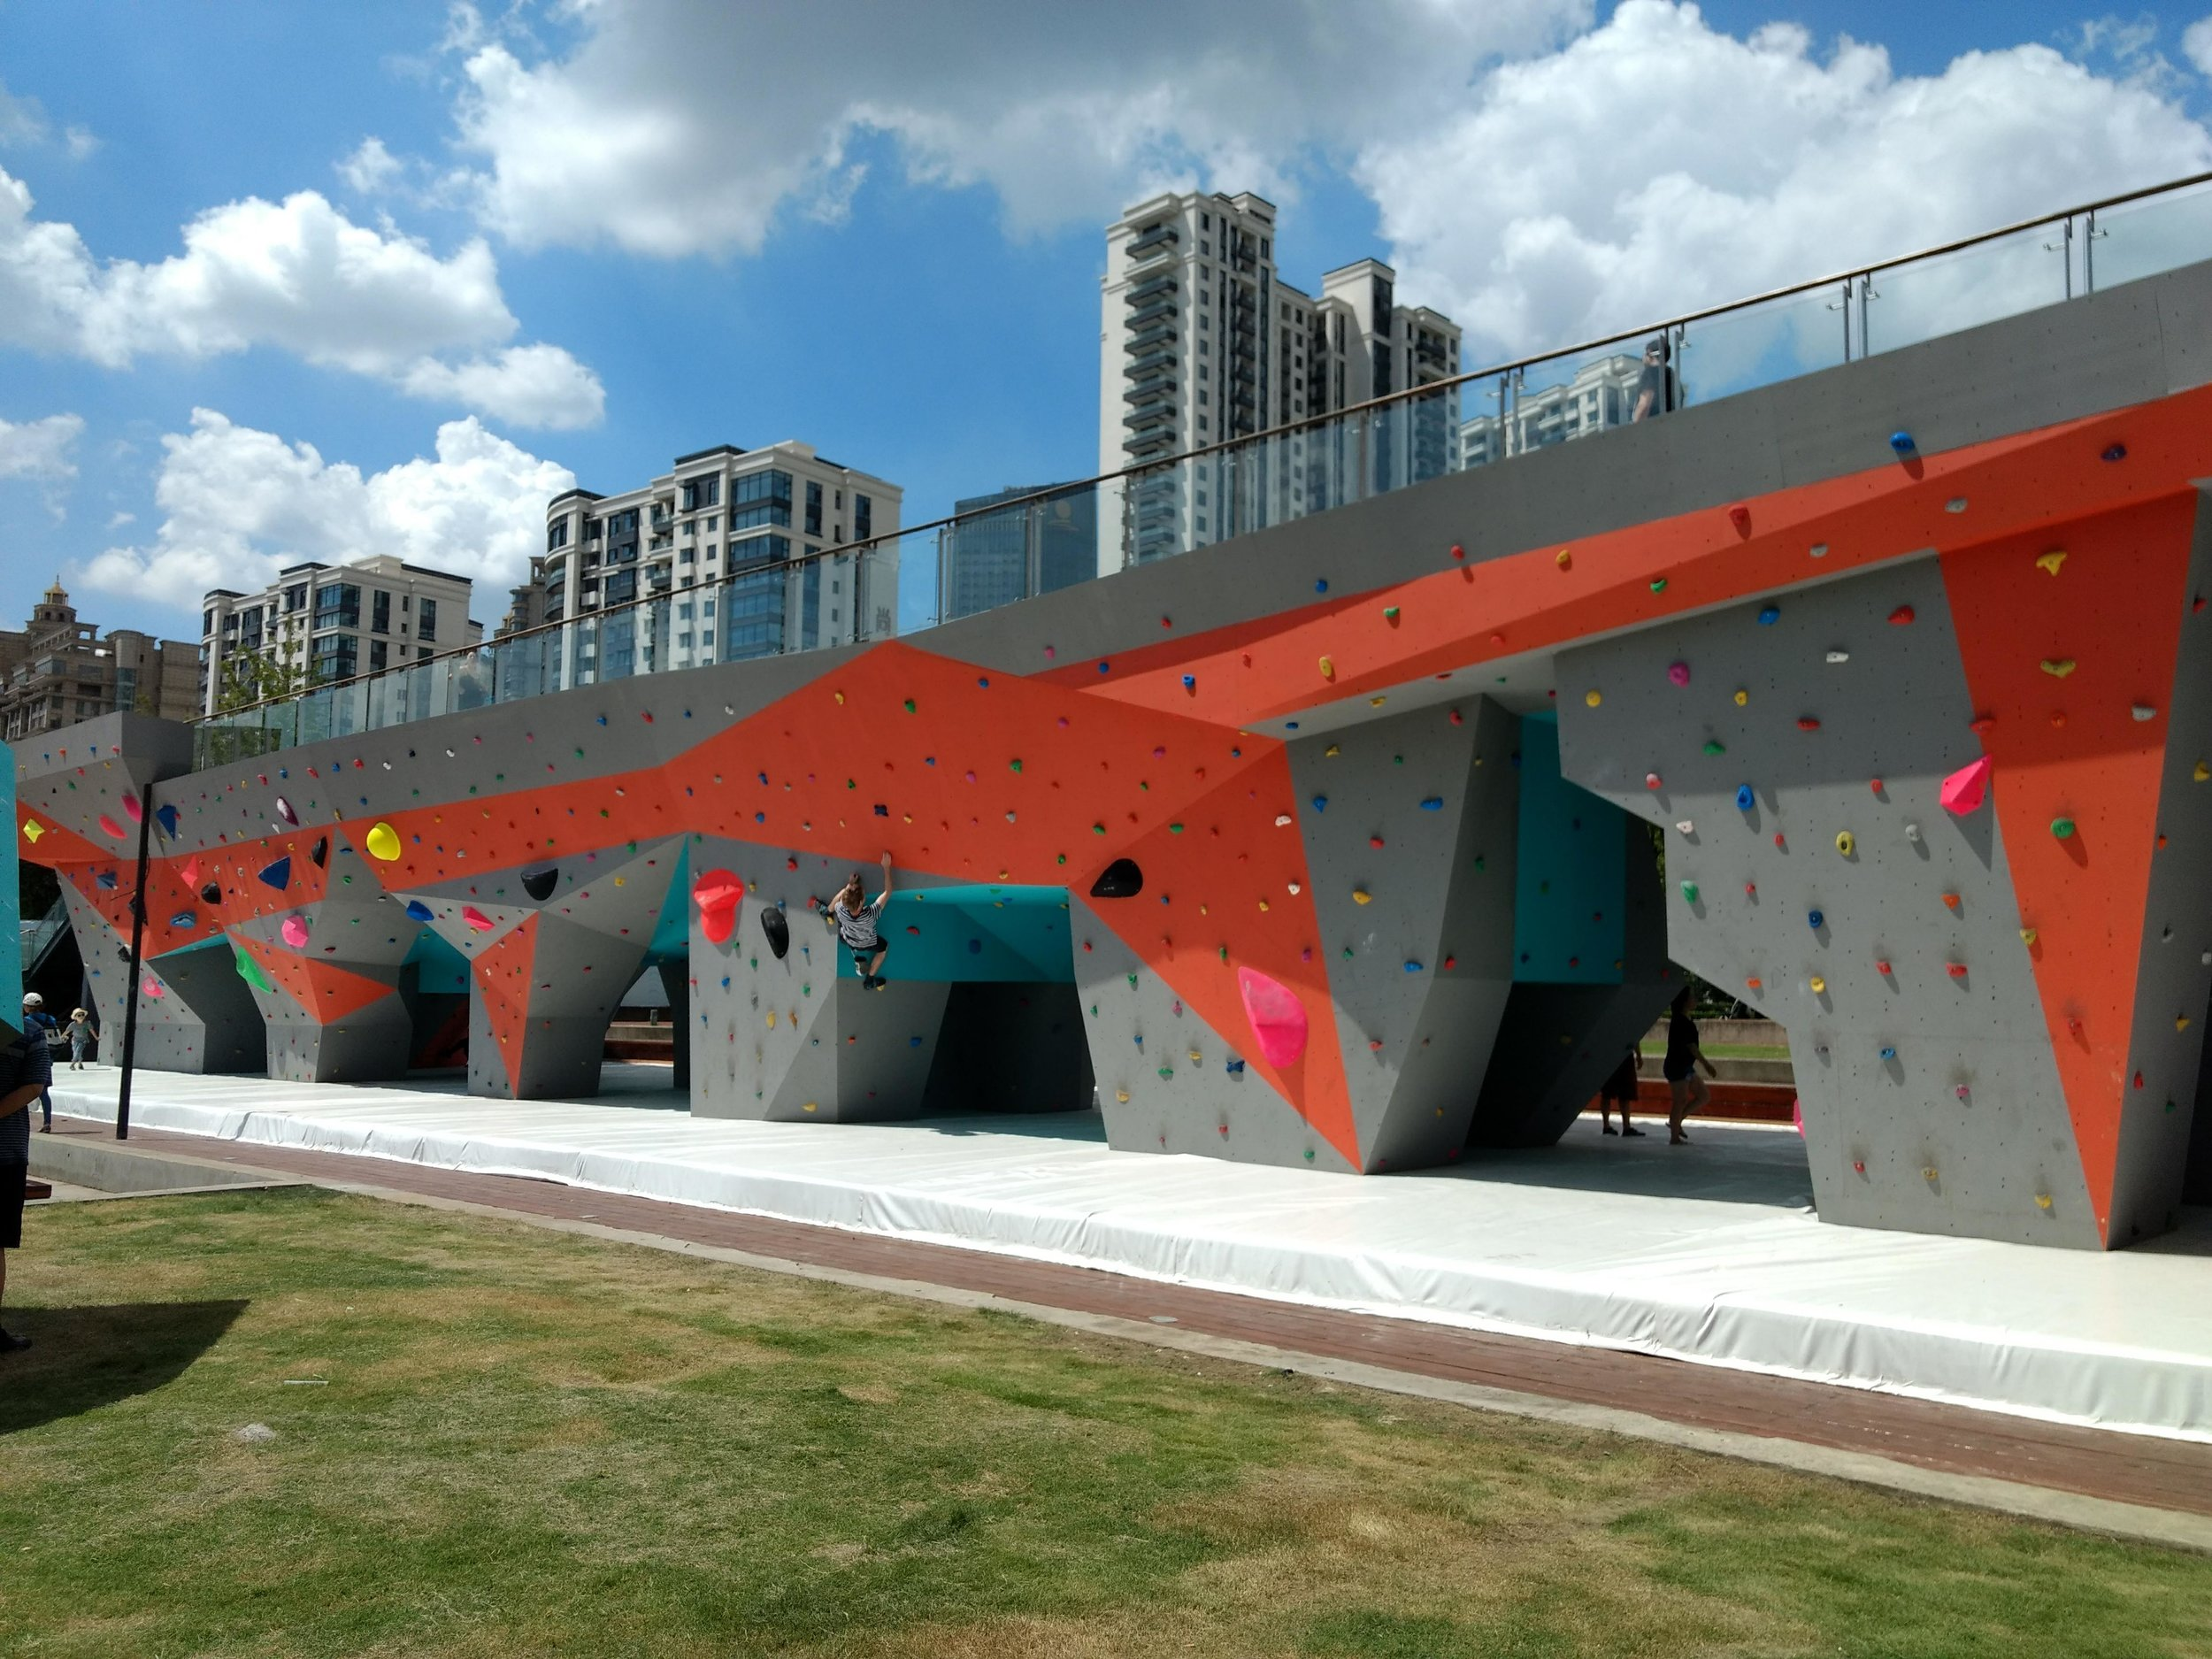 West bund climbing wall